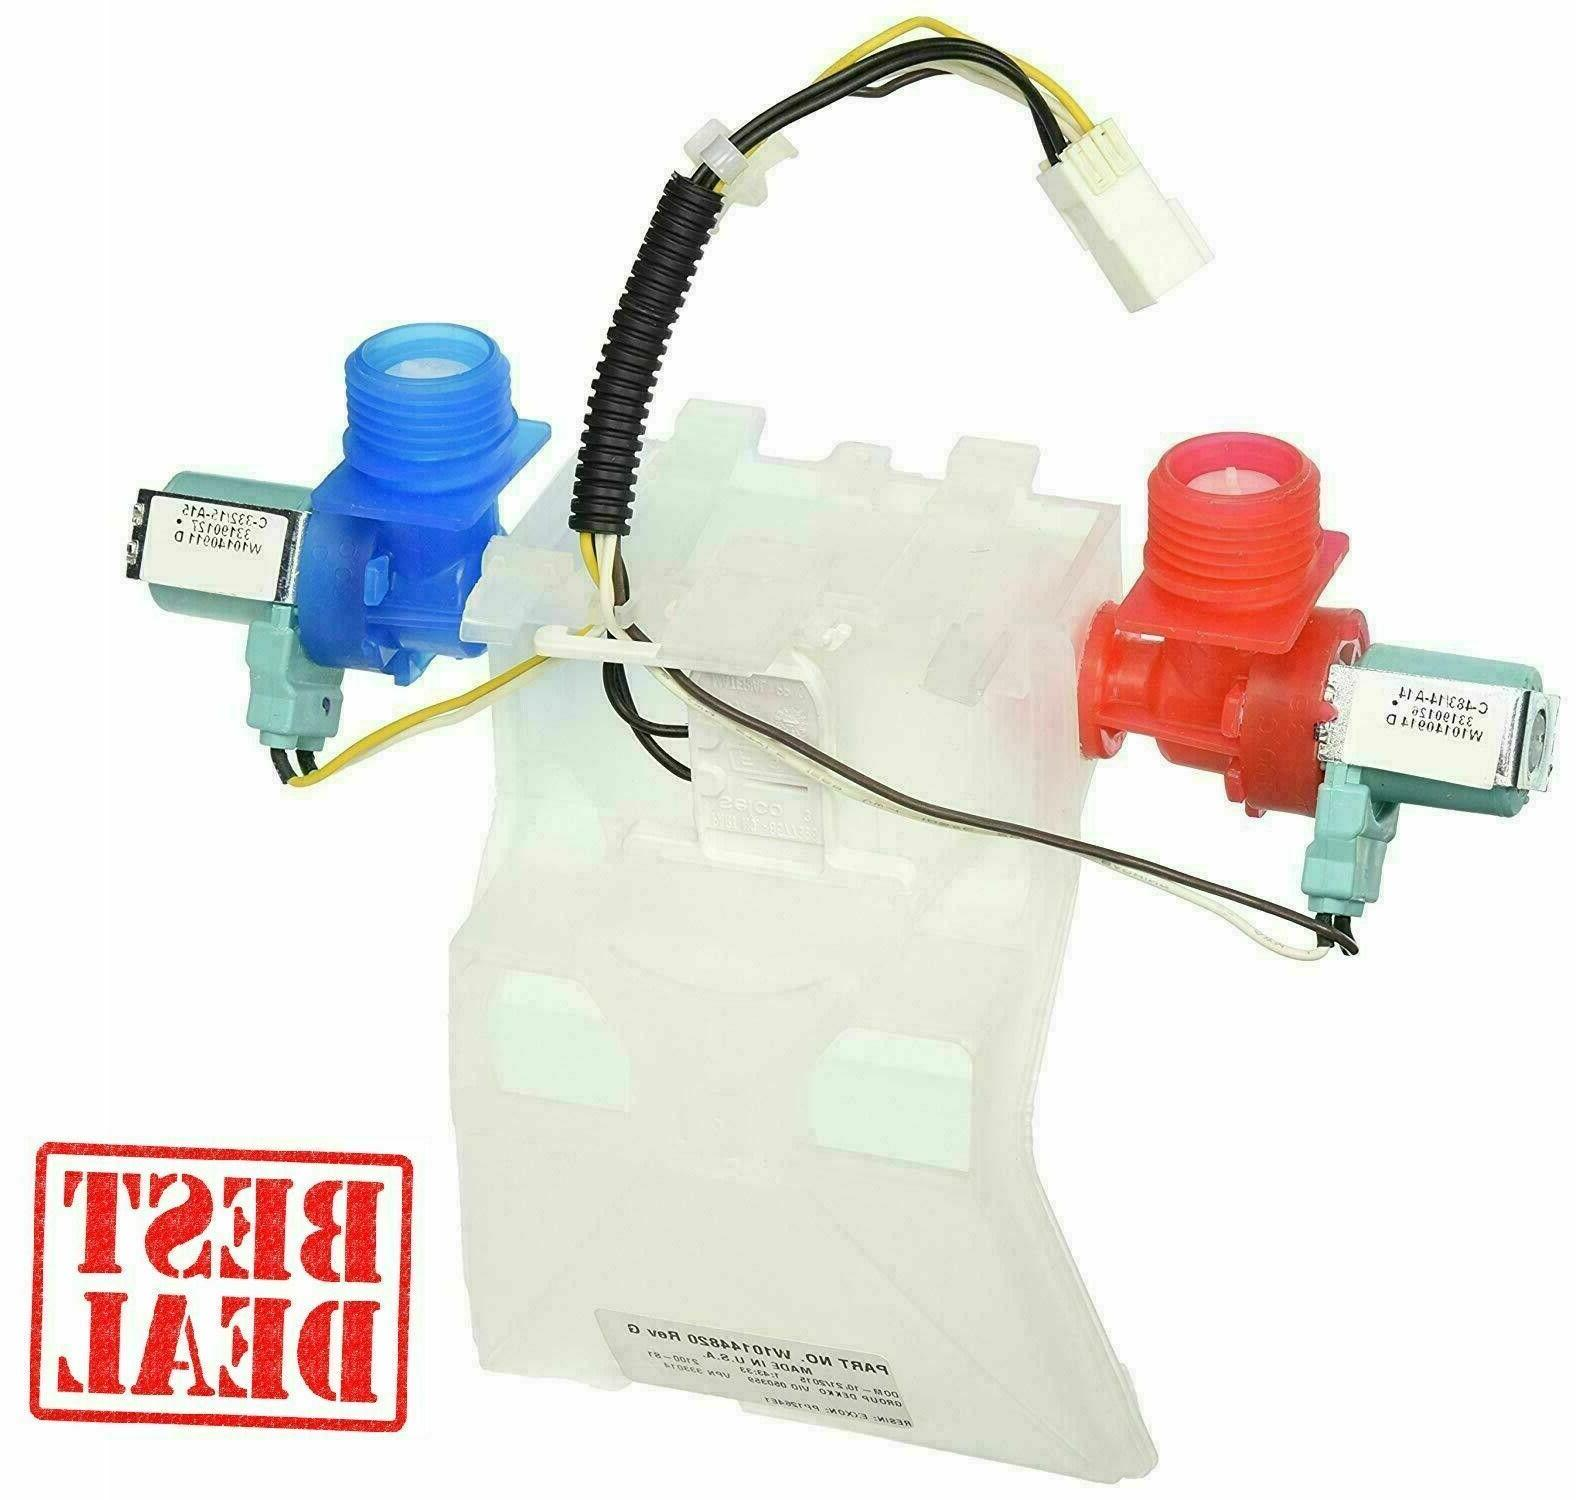 washer water inlet valve replacement wpw10140917 w10140917